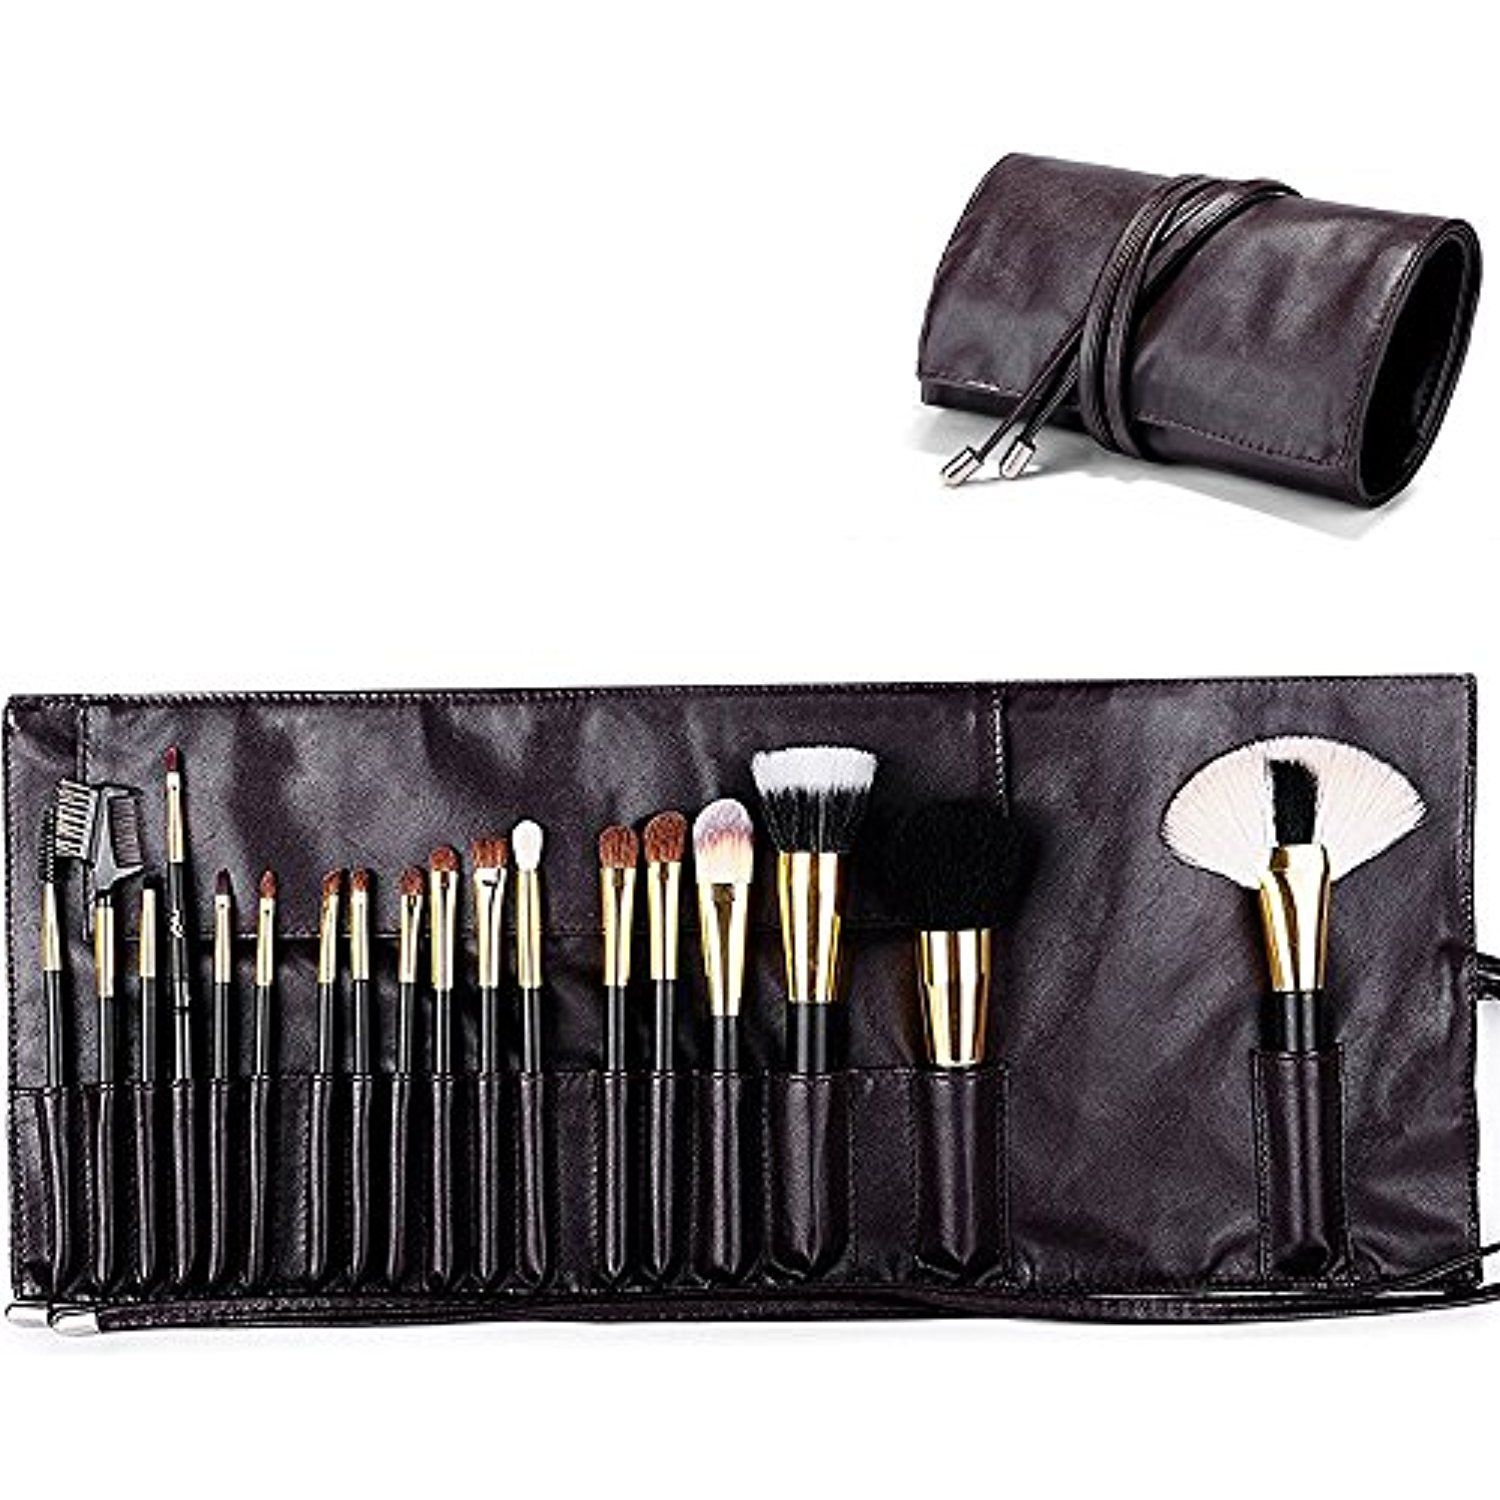 bbed0ba5cb MLMSY Makeup Brush Rolling Pouch Brushes Holder Cosmetic Bag Organizer  Travel Portable 18 Pockets Cosmetics Brushes Leather Case (Type-2)    Details can be ...